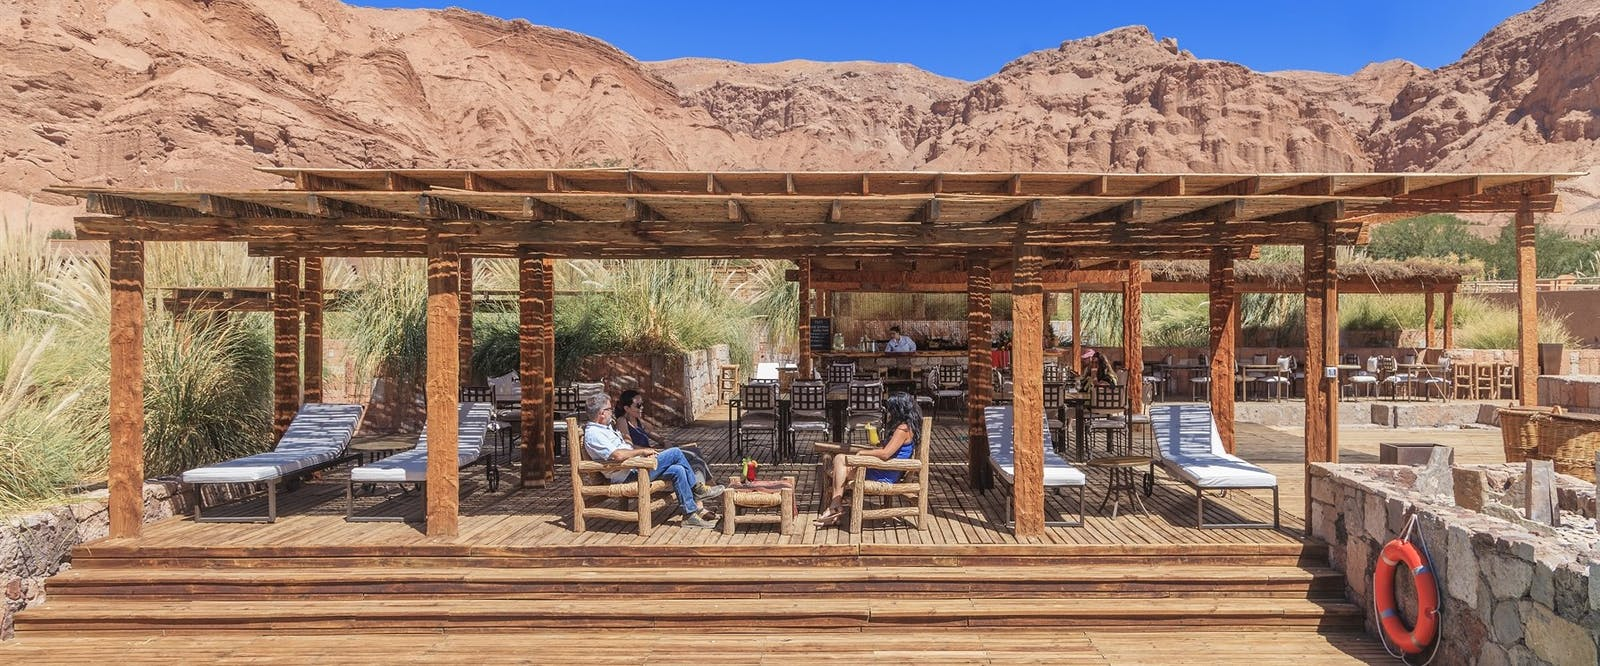 Pool bar at alto atacama, Chile